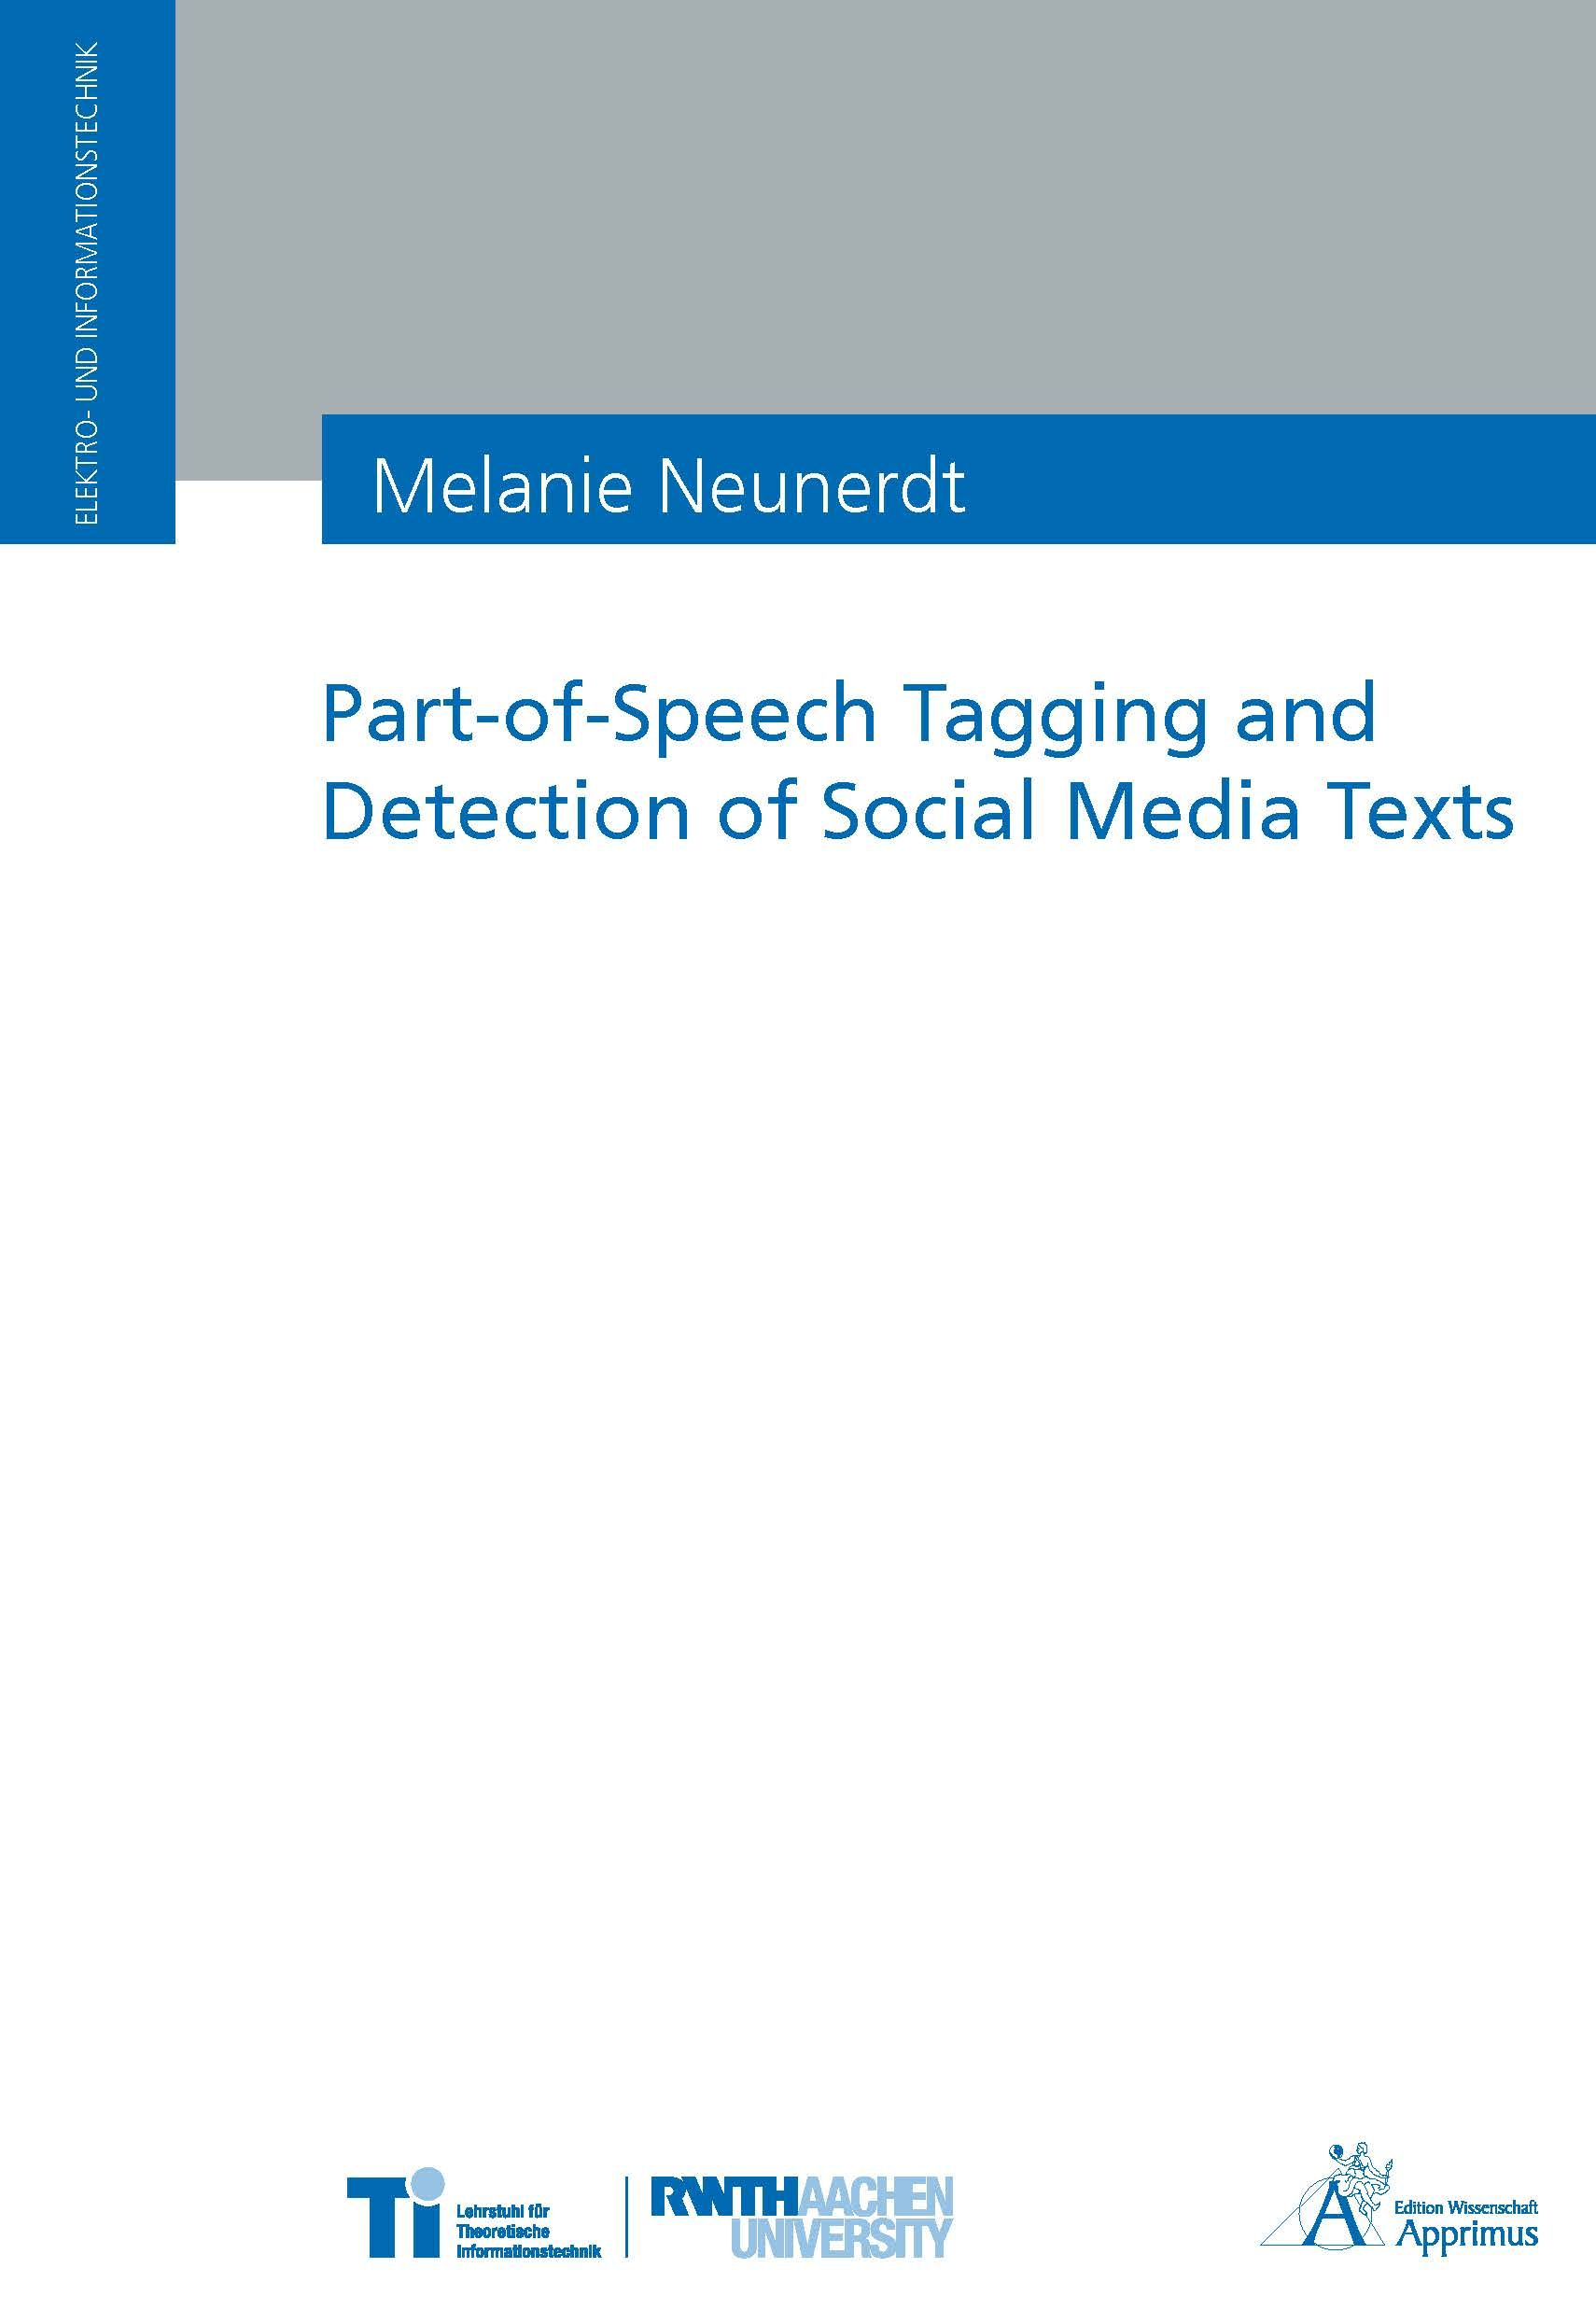 Part-of-Speech Tagging and Detection of Social Media Texts